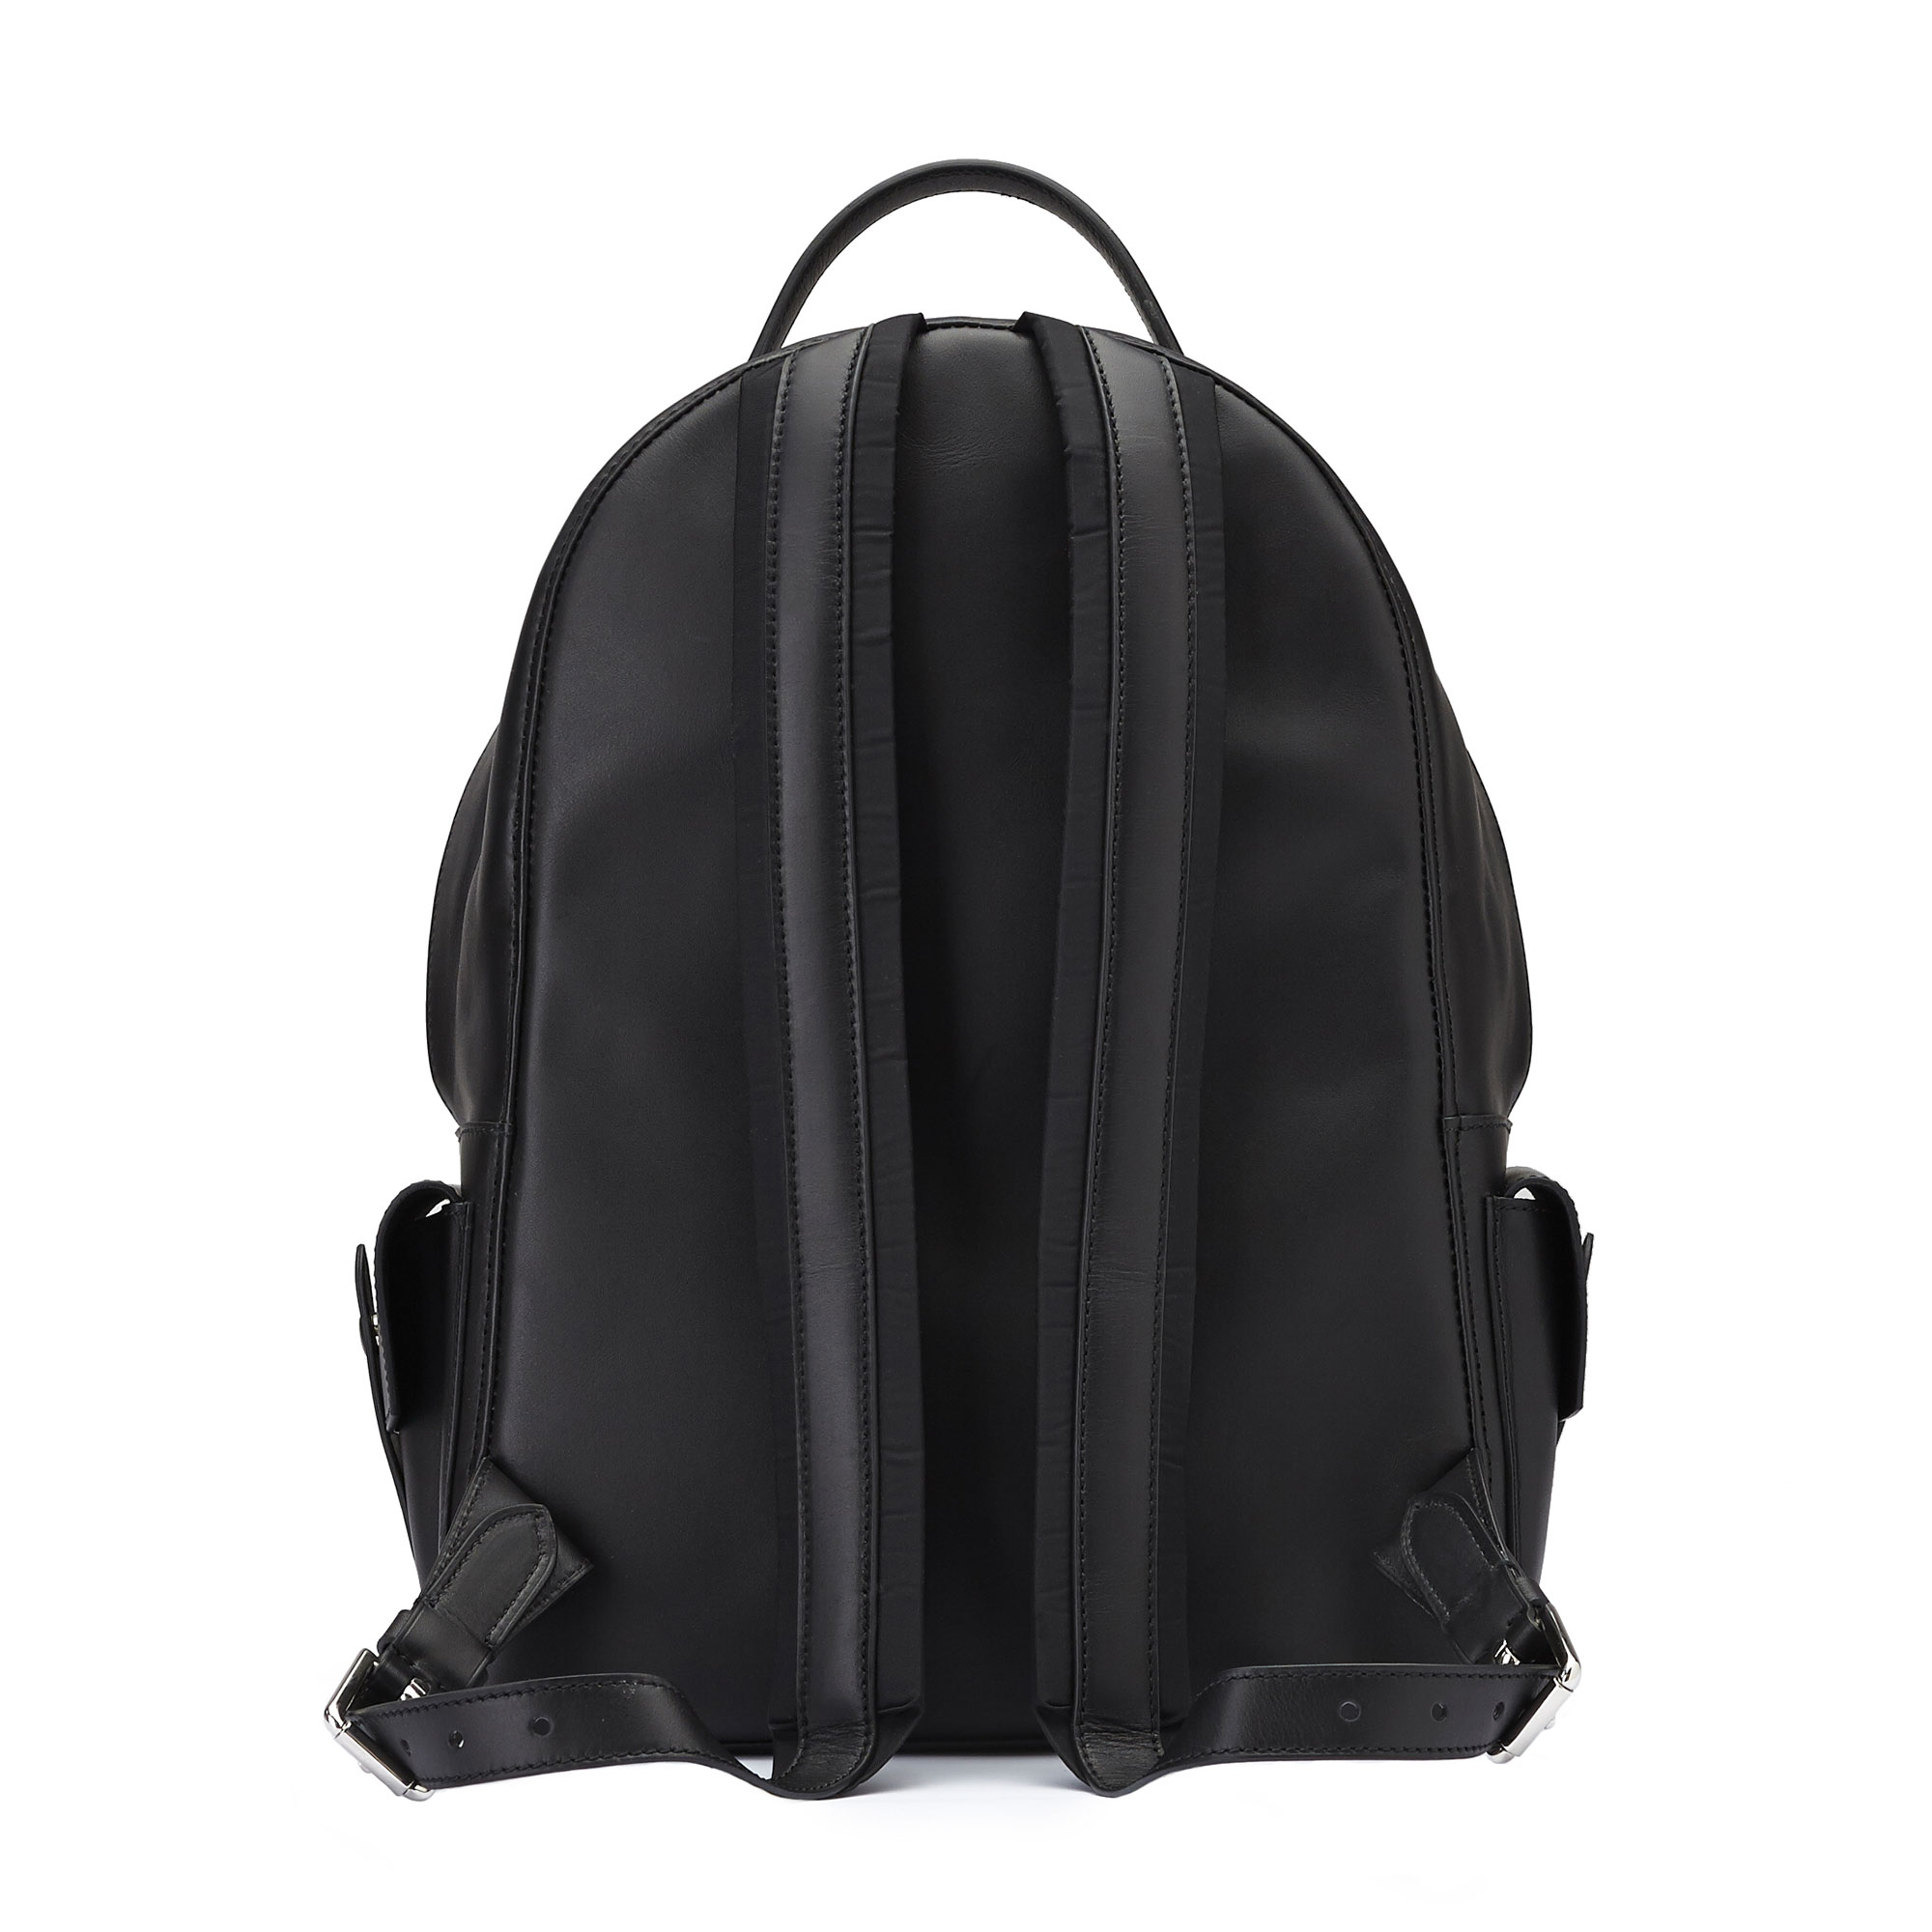 The black french calf Zip Backpack by Bertoni 1949 03